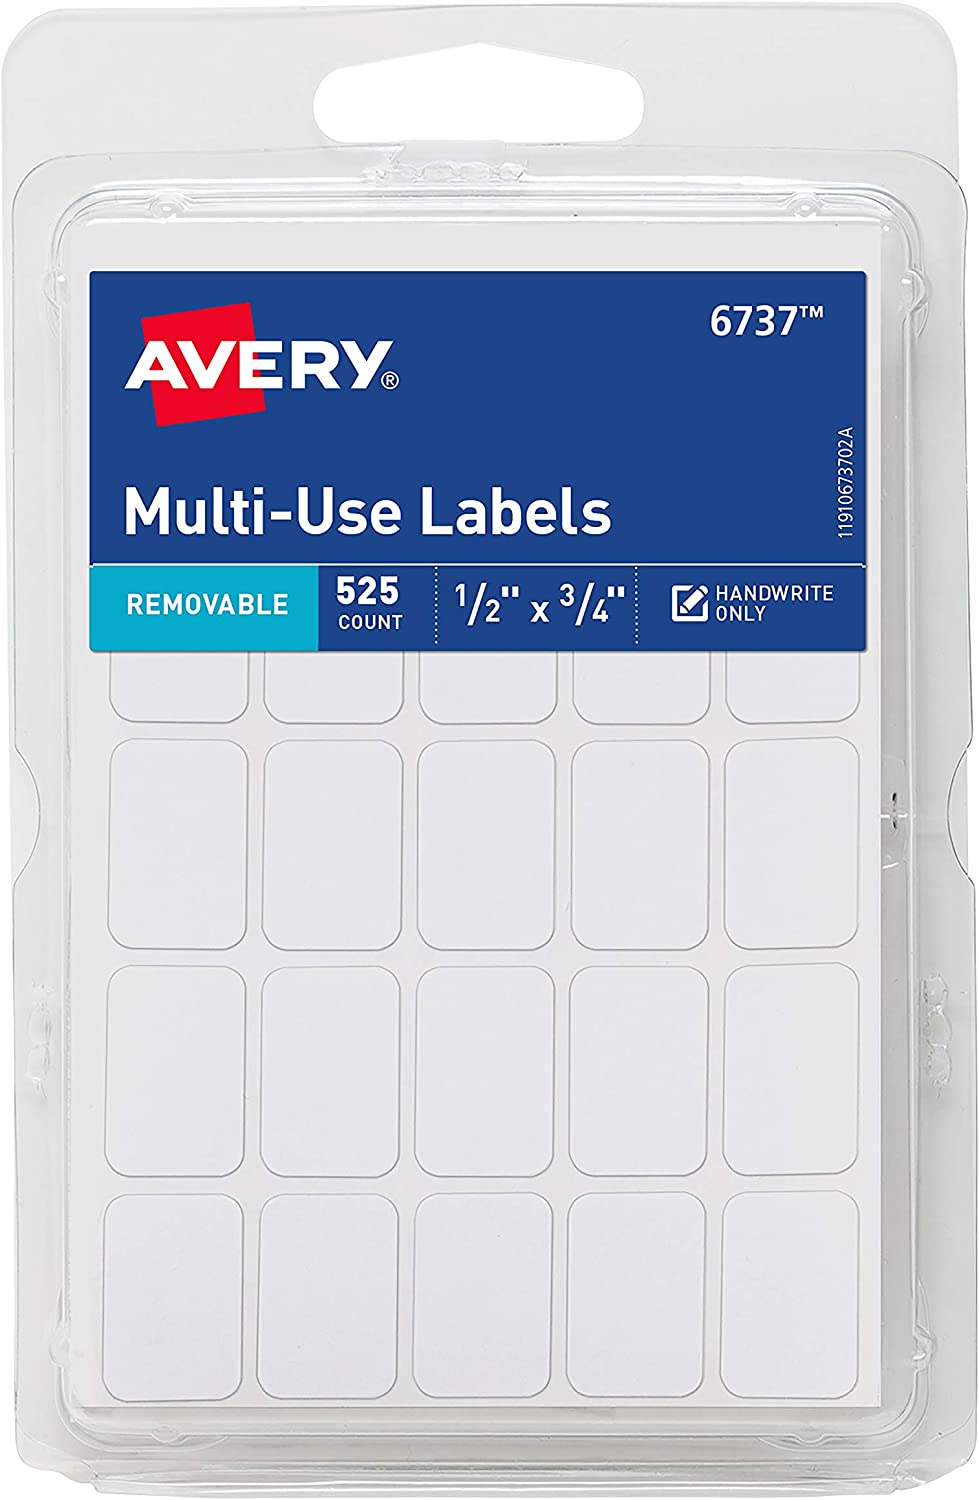 Avery Removable Labels, Rectangular, 0.5 x 0.75 Inches, White, Pack of 525 (6737) : Office Products